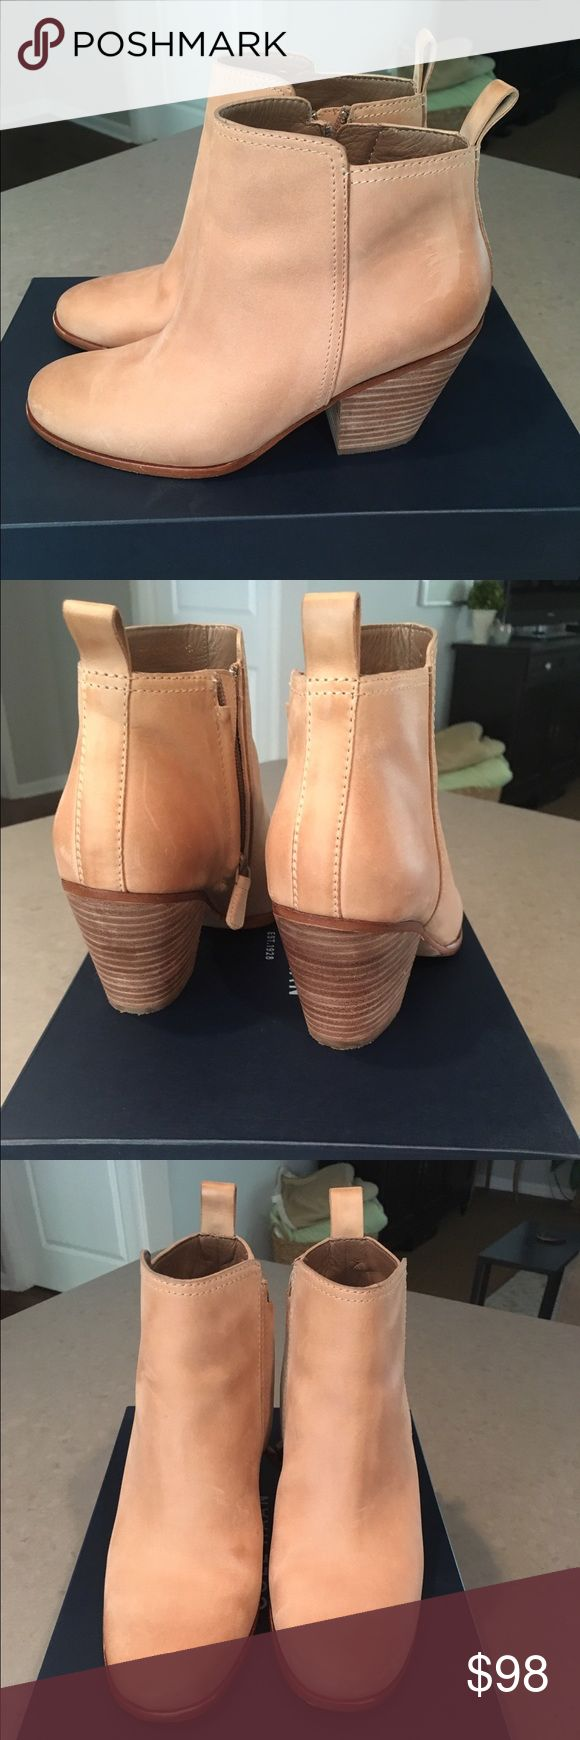 Cole Haan Chesney Bootie. EUC. Worn twice last season. Just too hot in Florida for booties. My loss is your gain. Great style and quality.  Comes with original box. Bough at Cole Haan Store. Not outlet. Cole Haan Shoes Ankle Boots & Booties